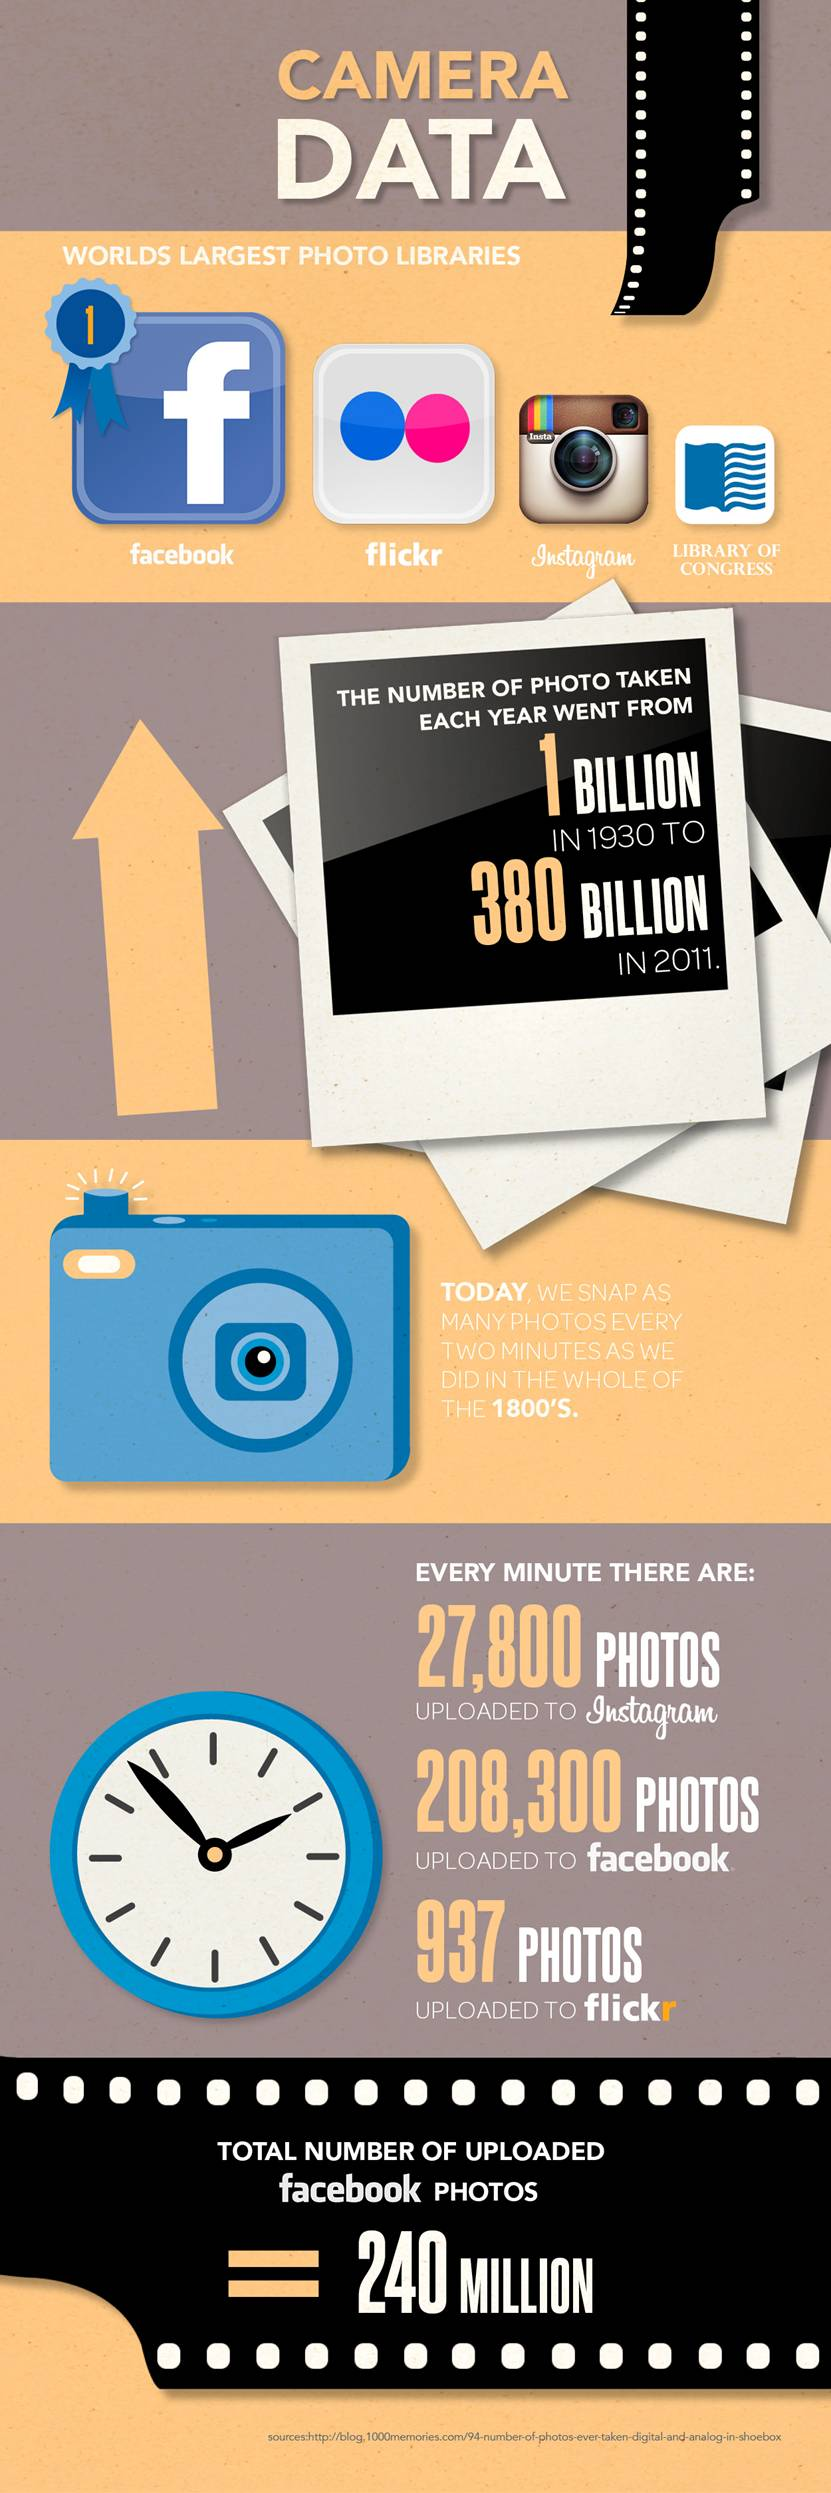 camera infographic from Panasonic Lumix cameras